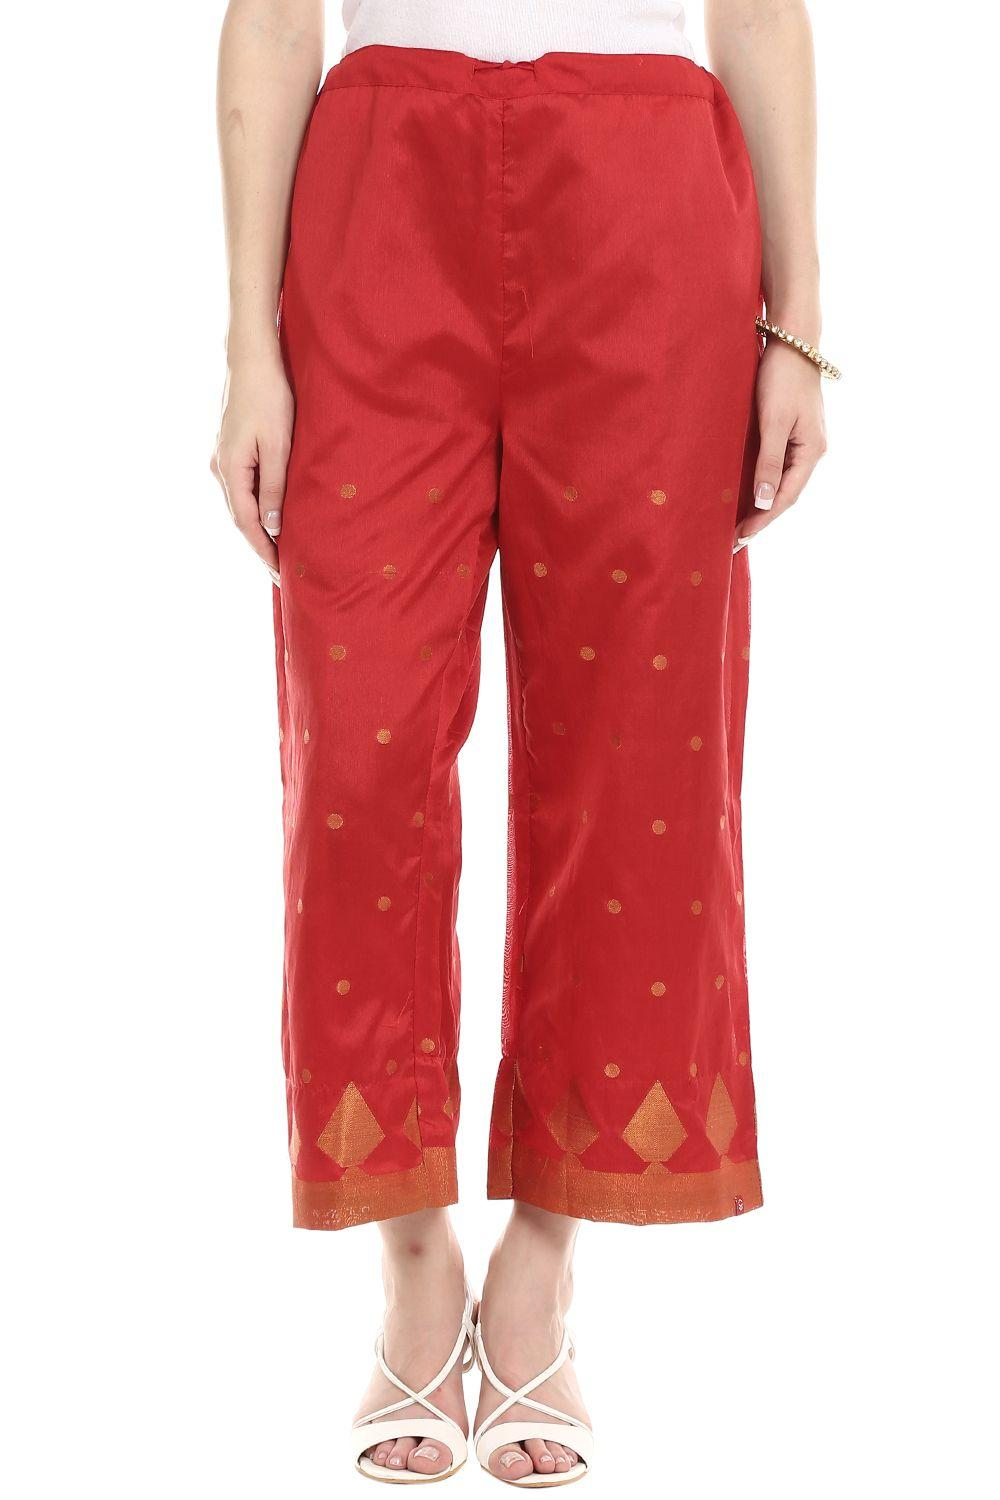 Red Poly Metallic Cotton Palazzo - CORE13142AW17RE